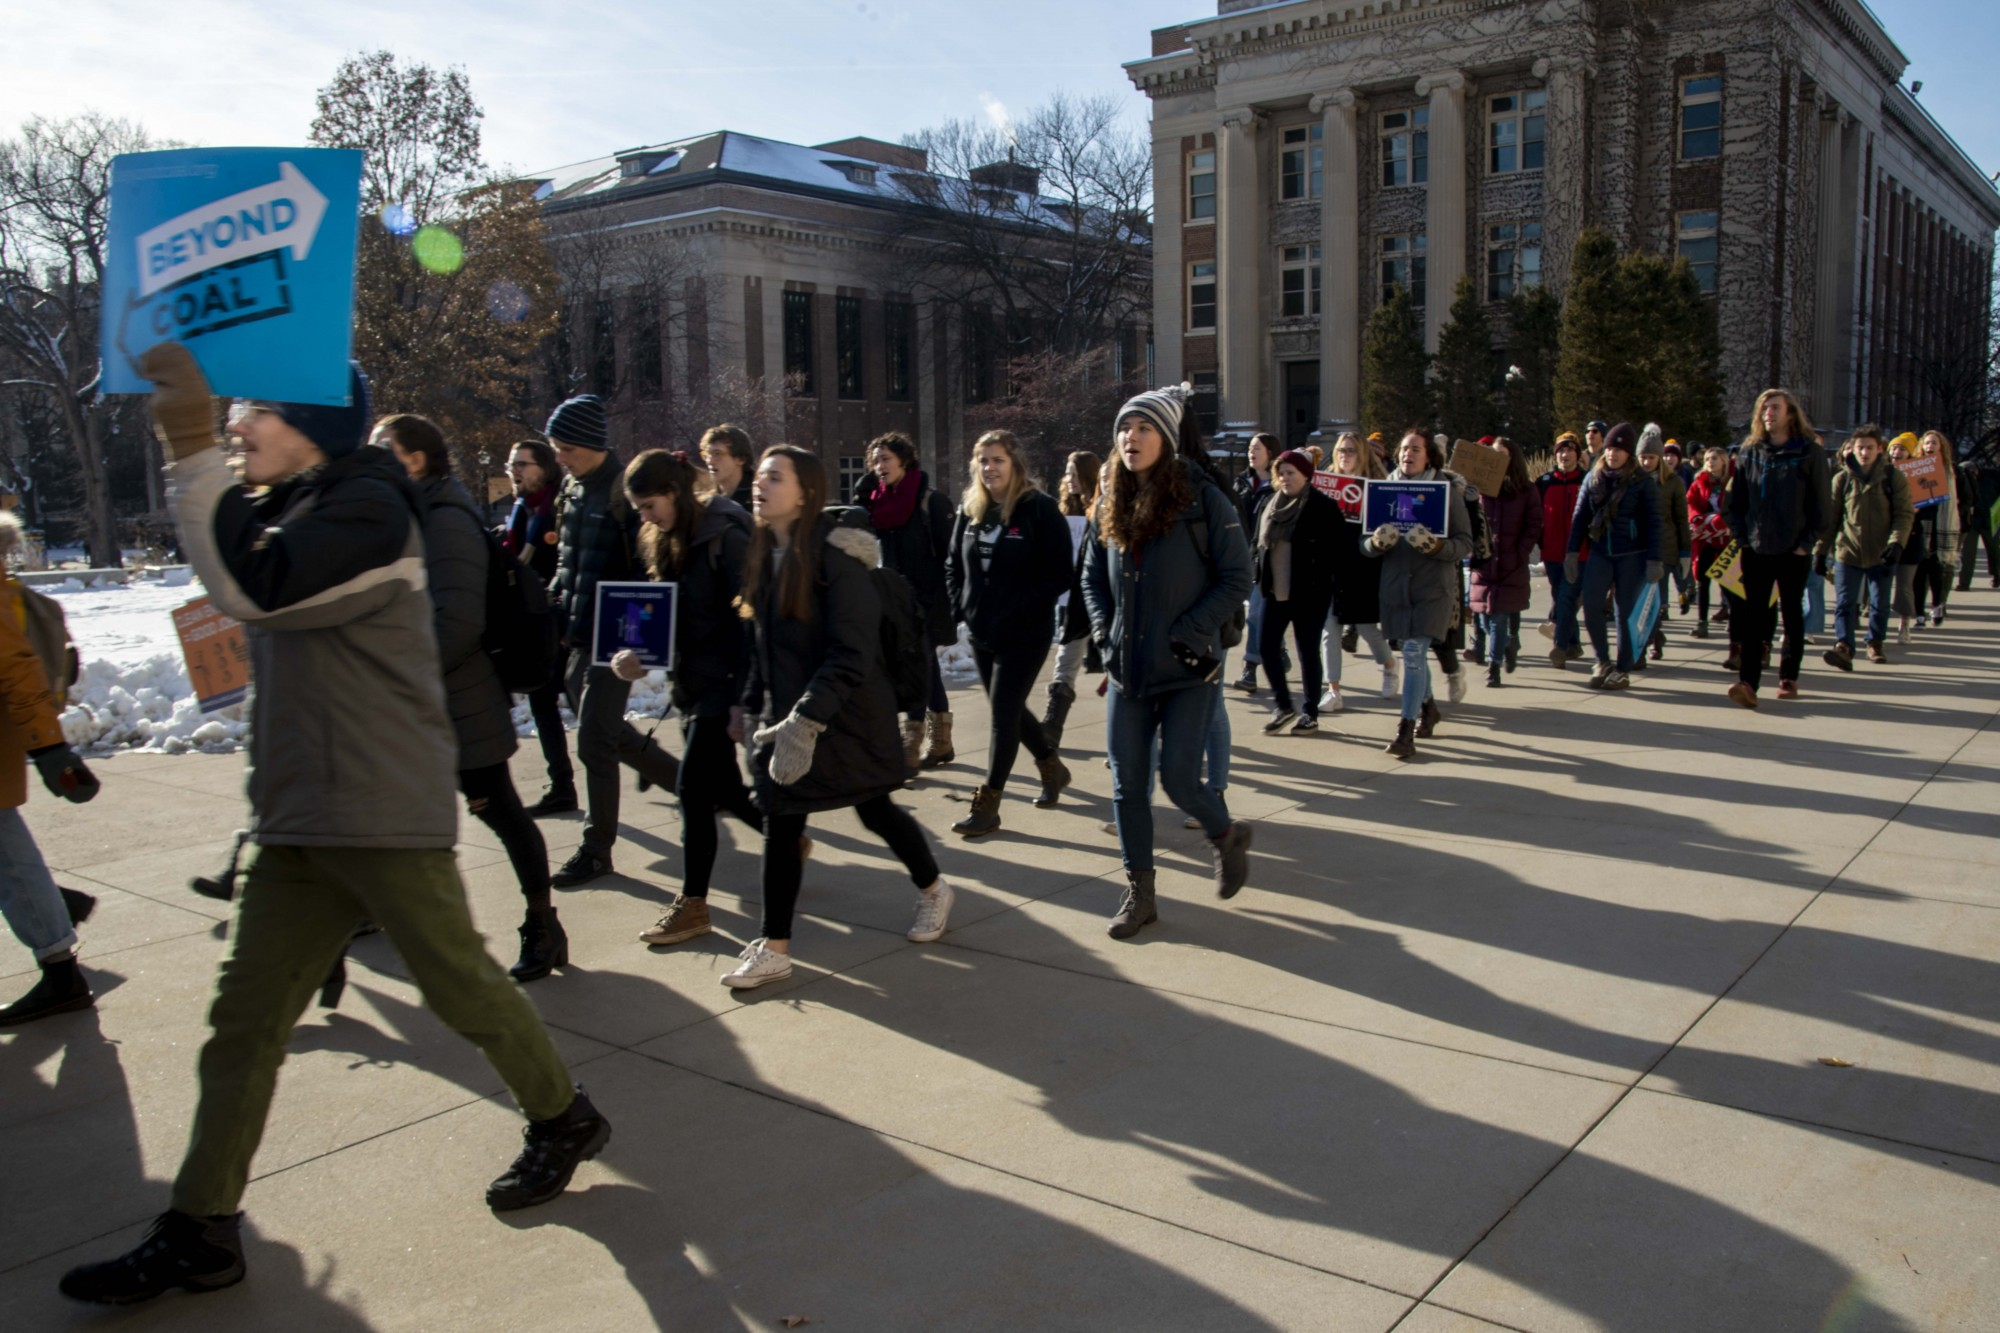 <p>Students and faculty march towards Morrill Hall as part of the UMN Climate Strike on Friday, Dec. 6. Those in attendance criticized the University's policies on fossil fuel usage.</p>